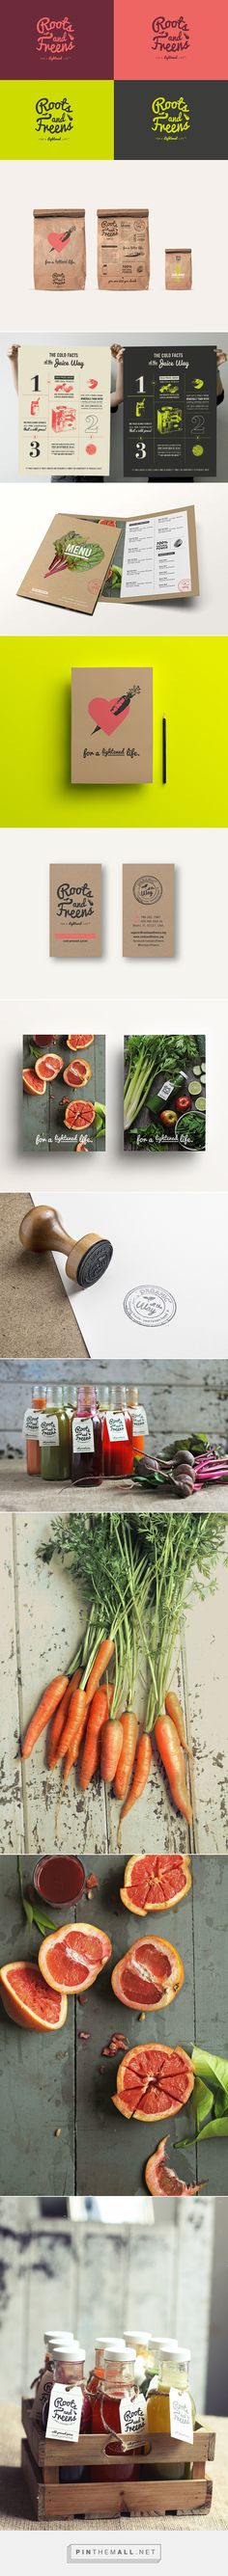 Roots & Freens on Behance curated by Packaging Diva PD. Tasty and nice packaging too.